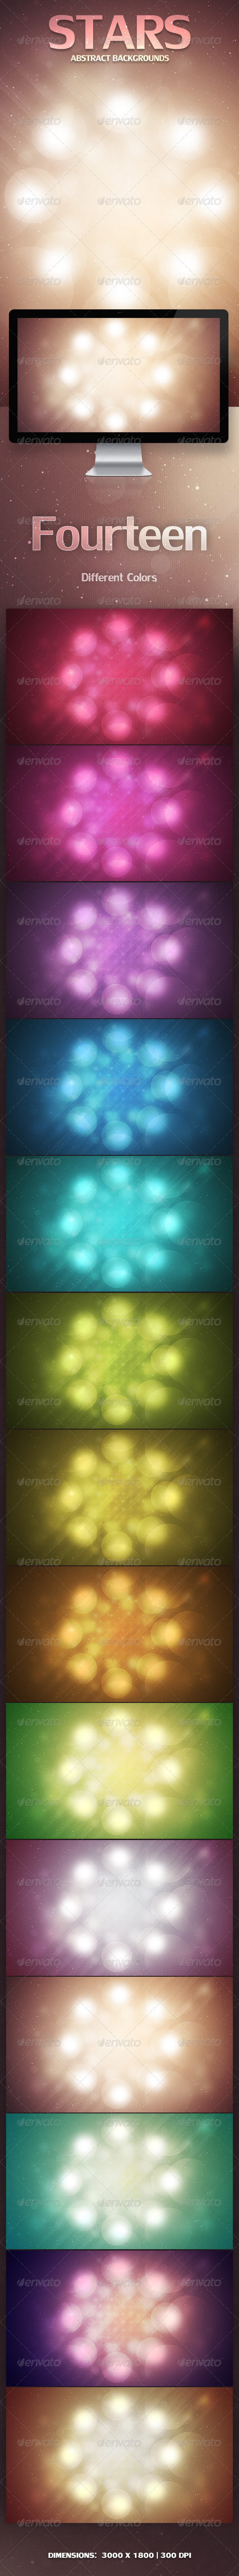 GraphicRiver Stars Abstract Backgrounds 3610004